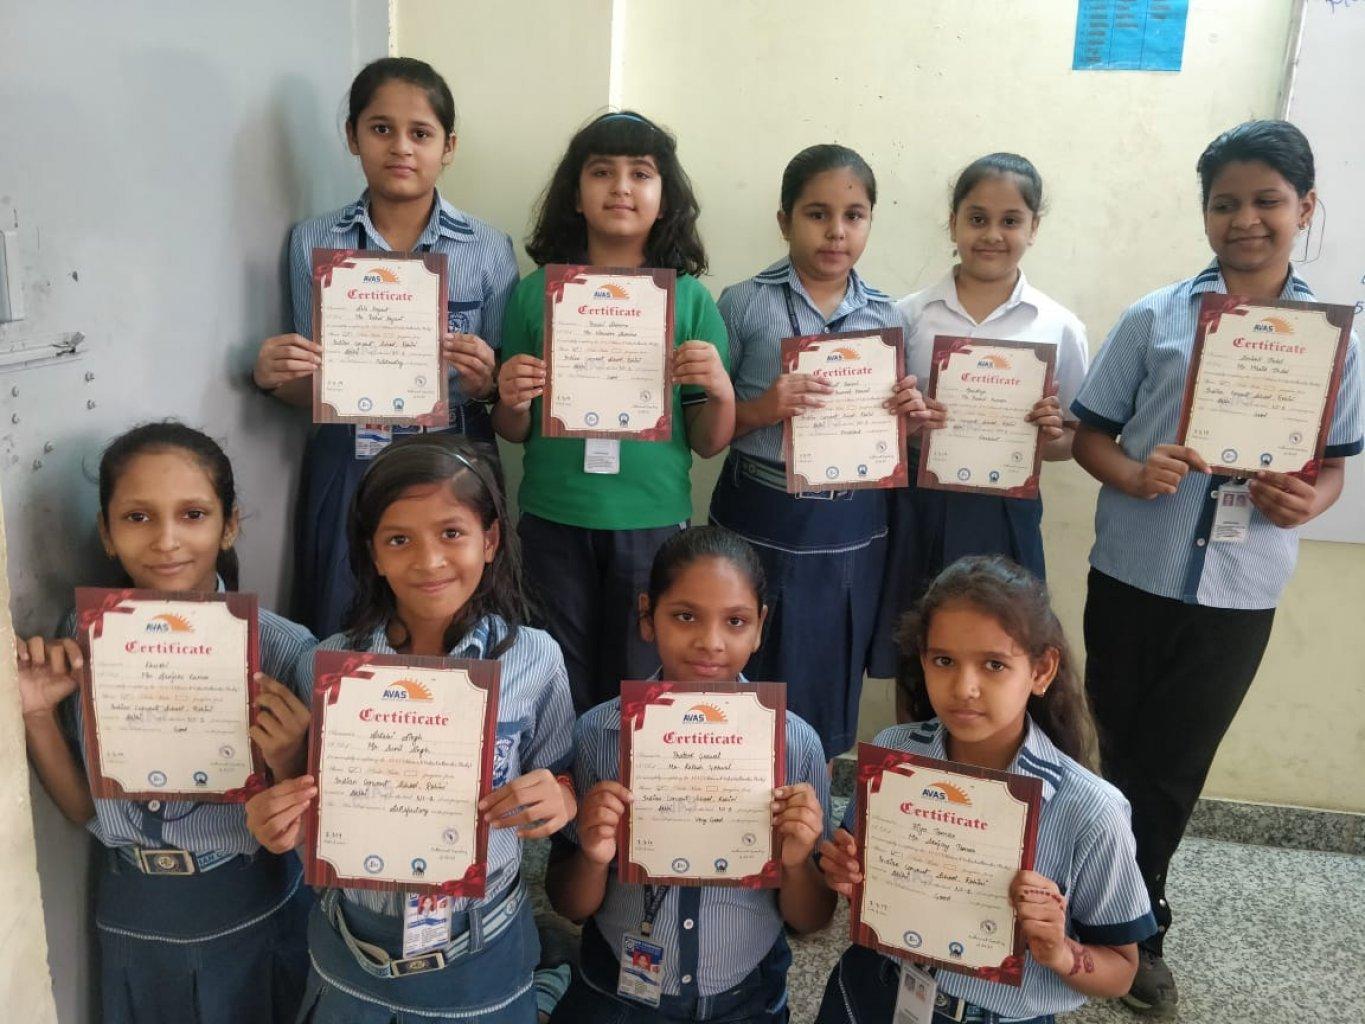 DISTRIBUTION OF ABACUS CERTIFICATES/MEDALS